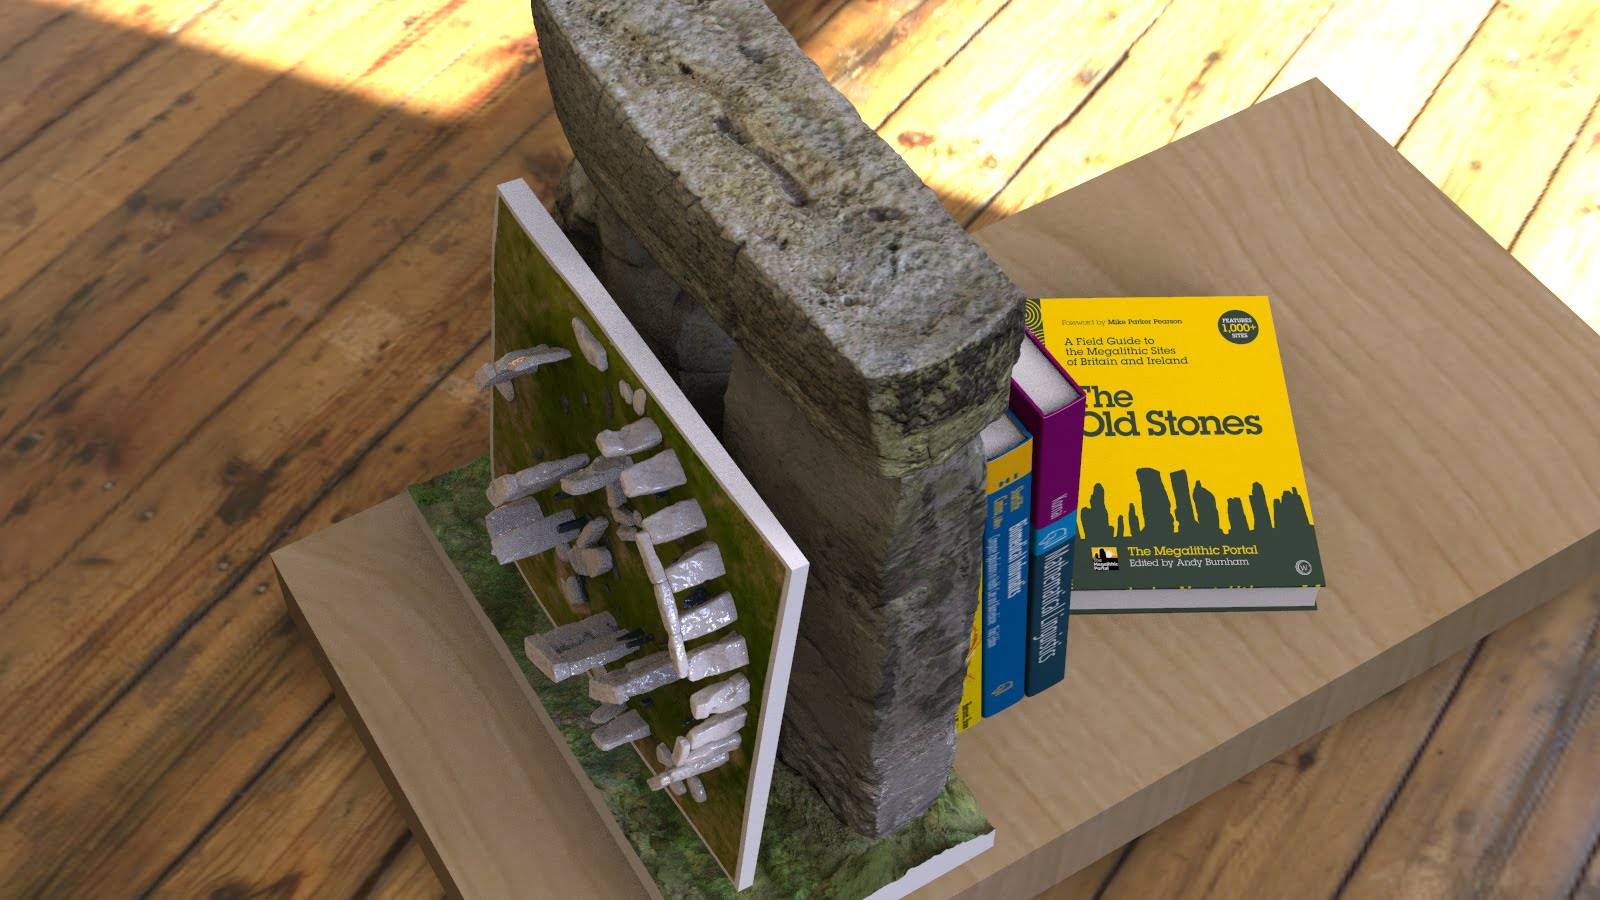 Buy Stonehenge Models: Stonehenge model replica bookend with hyper detailed gicell decals in full UV resistant colour 006  - 24th scale bookend with 200th full model -